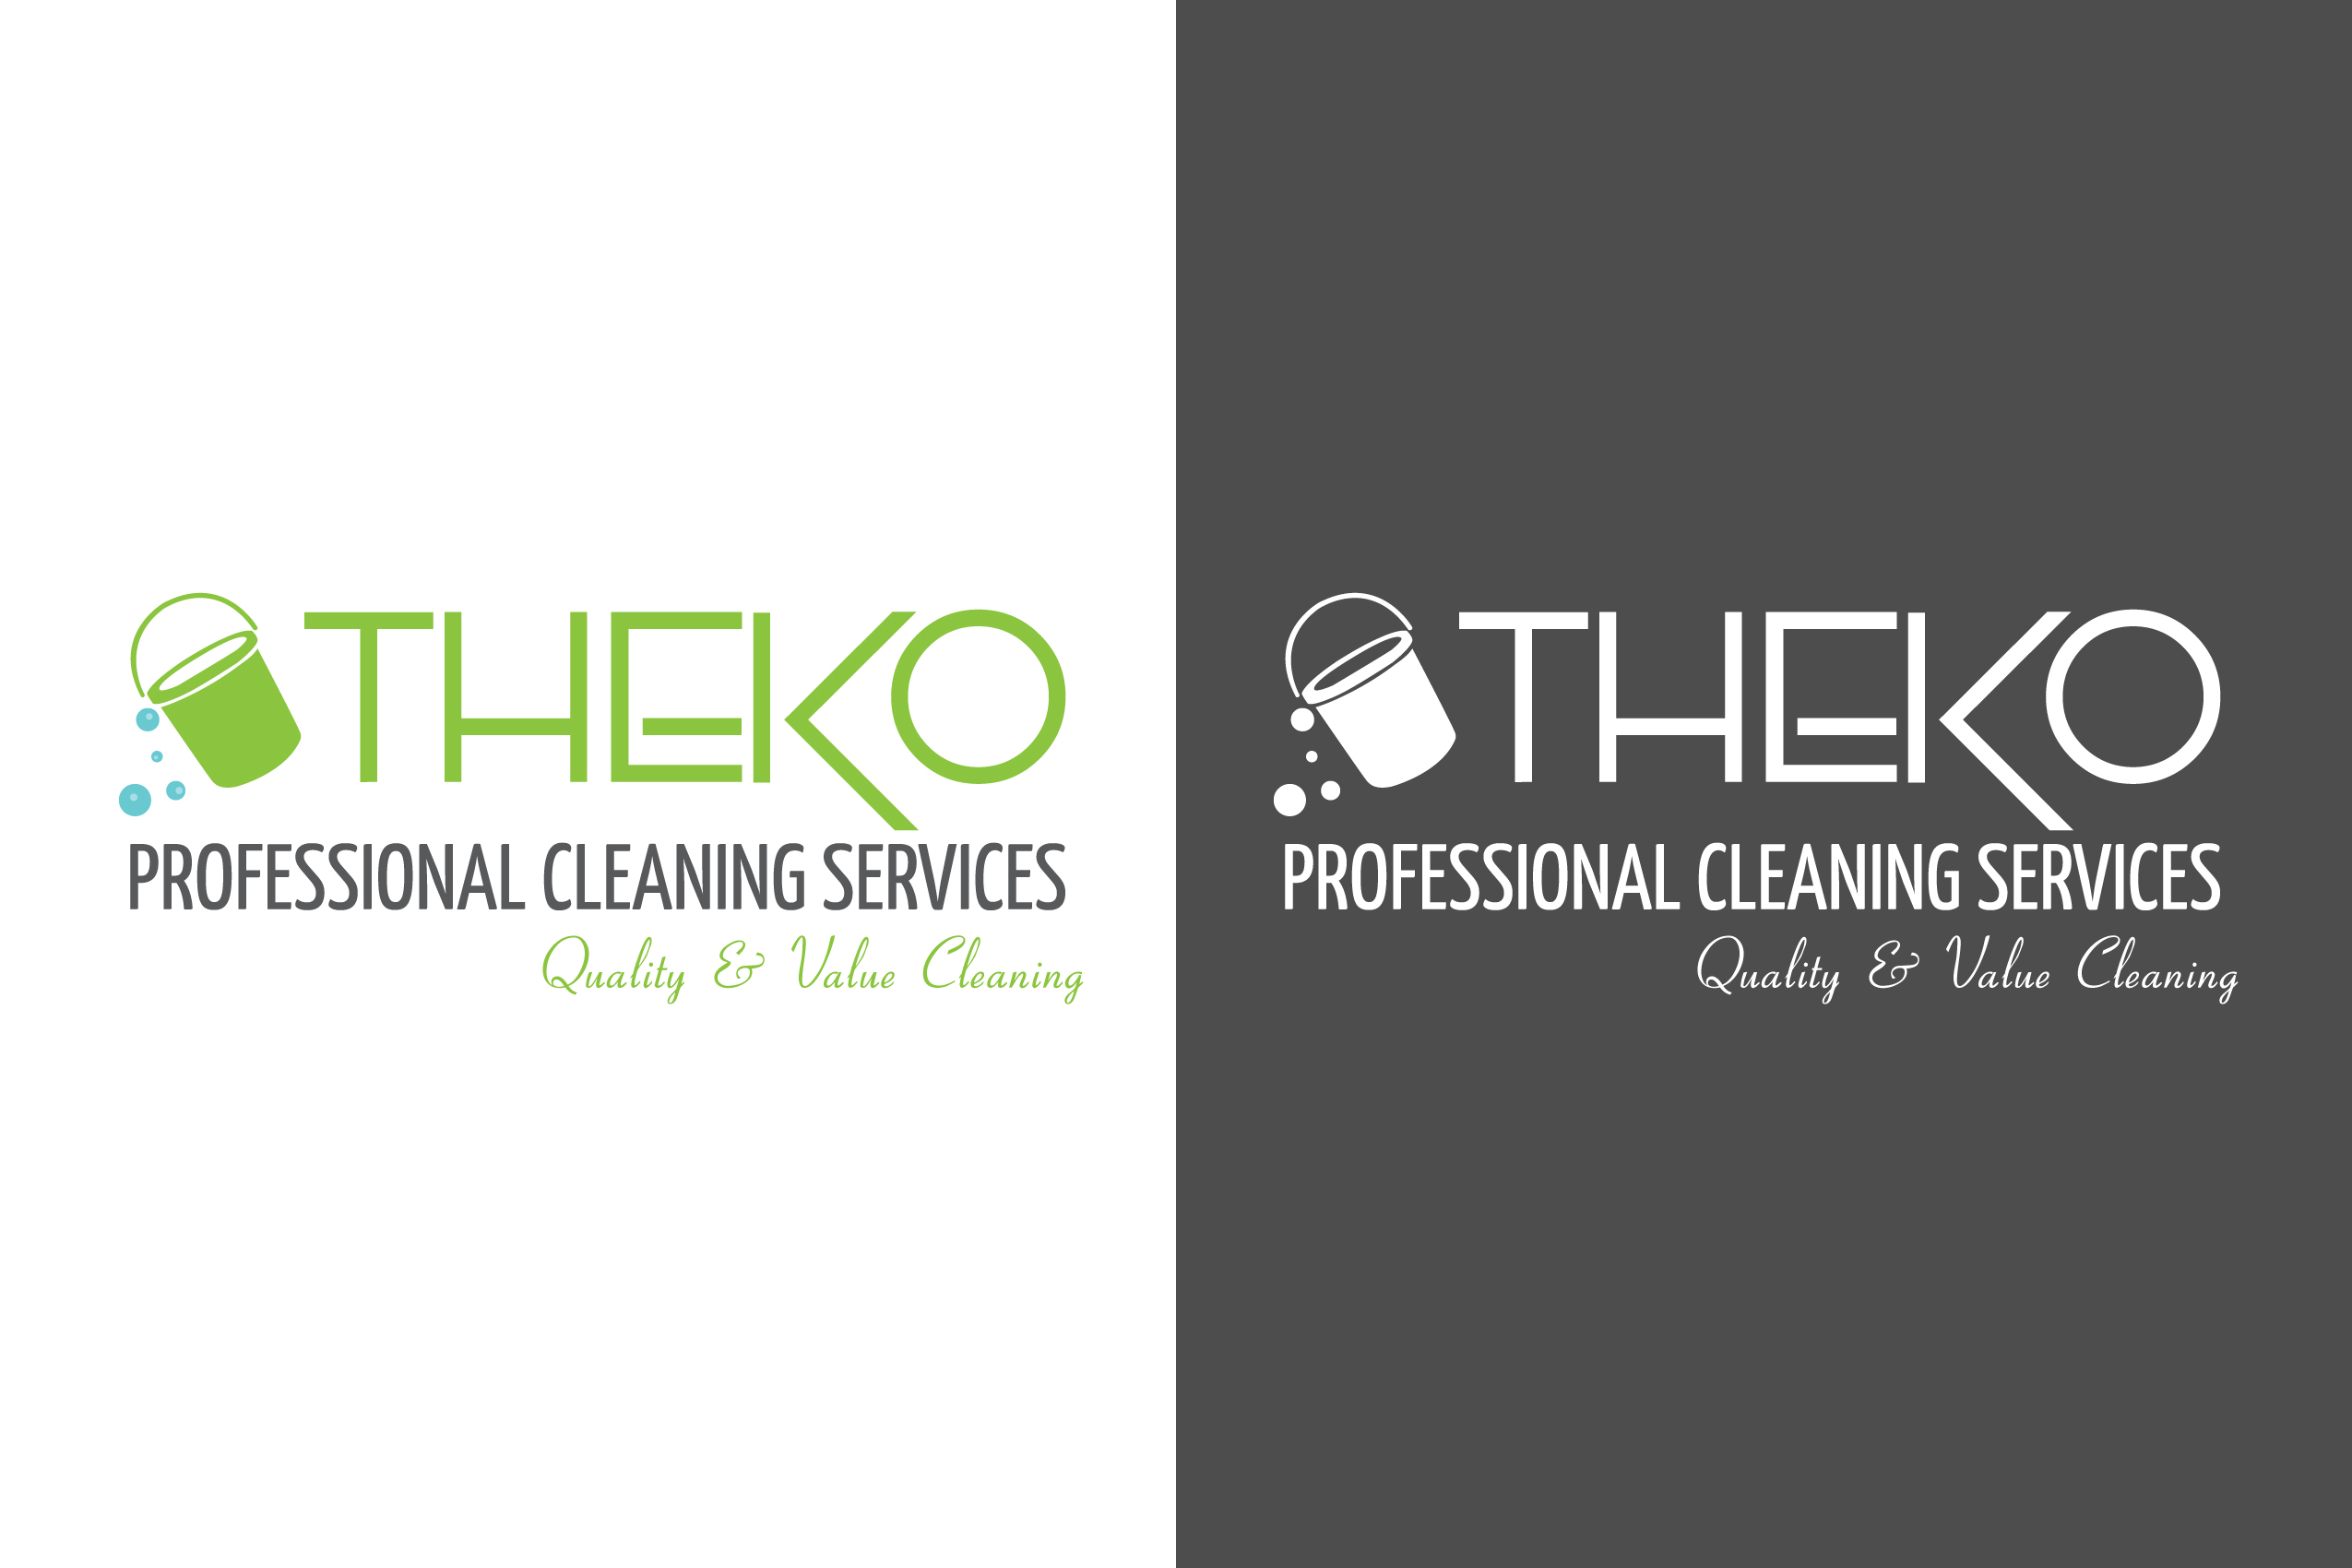 Theko-Professional-Cleaning-Services-Logo